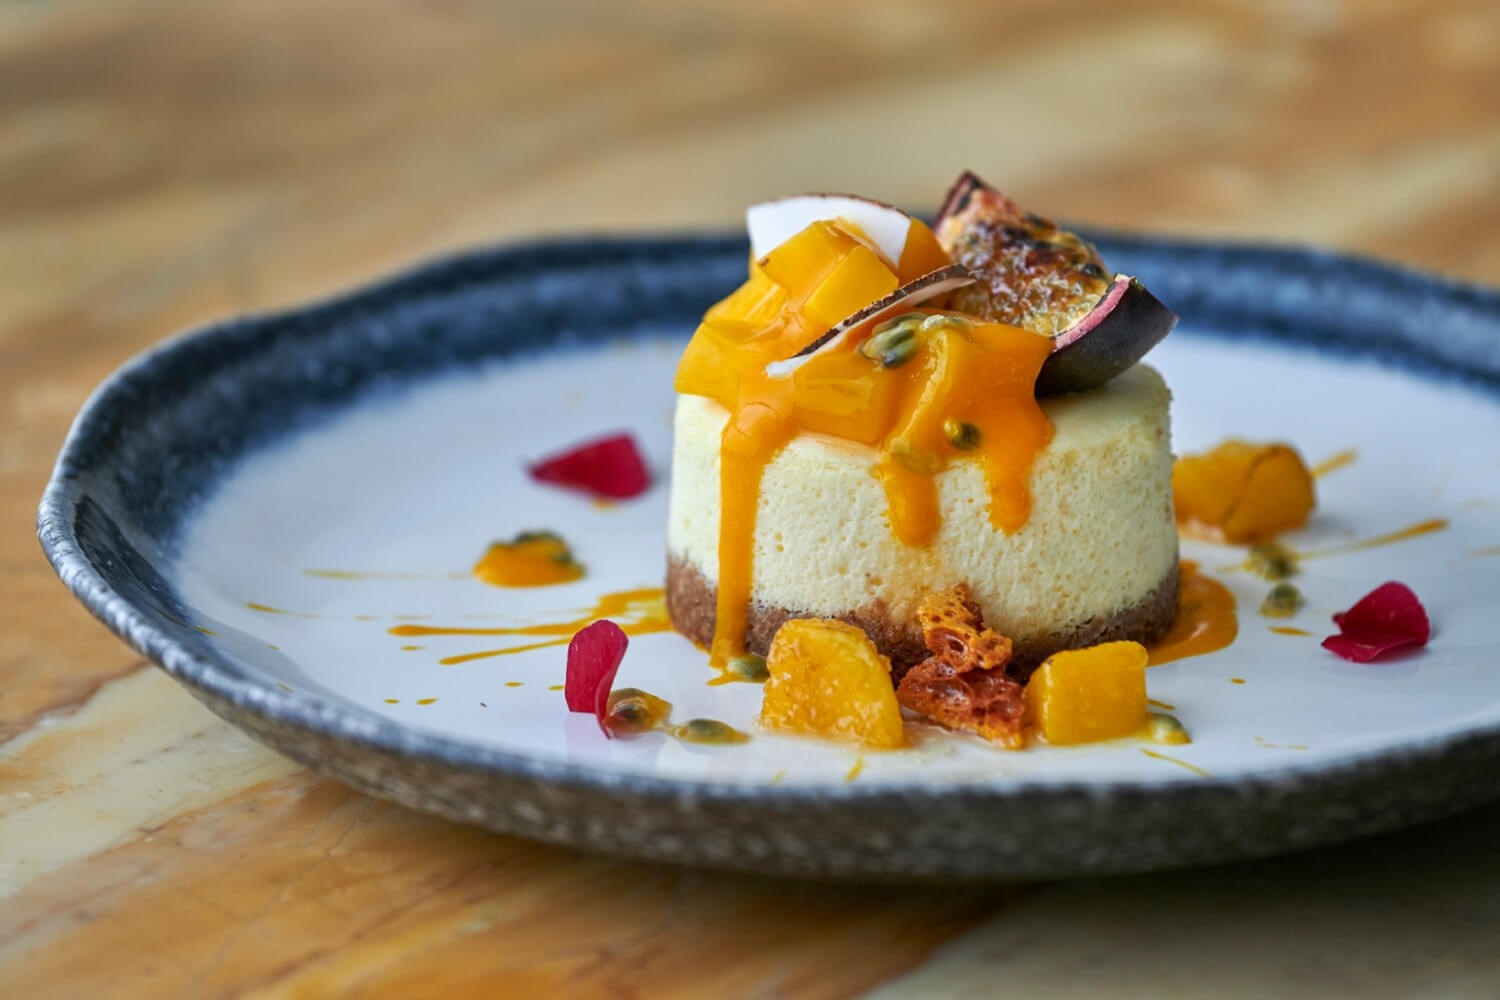 The baked cheesecake with passion fruit, coconut & mango is available at Italian restaurant Daphne's